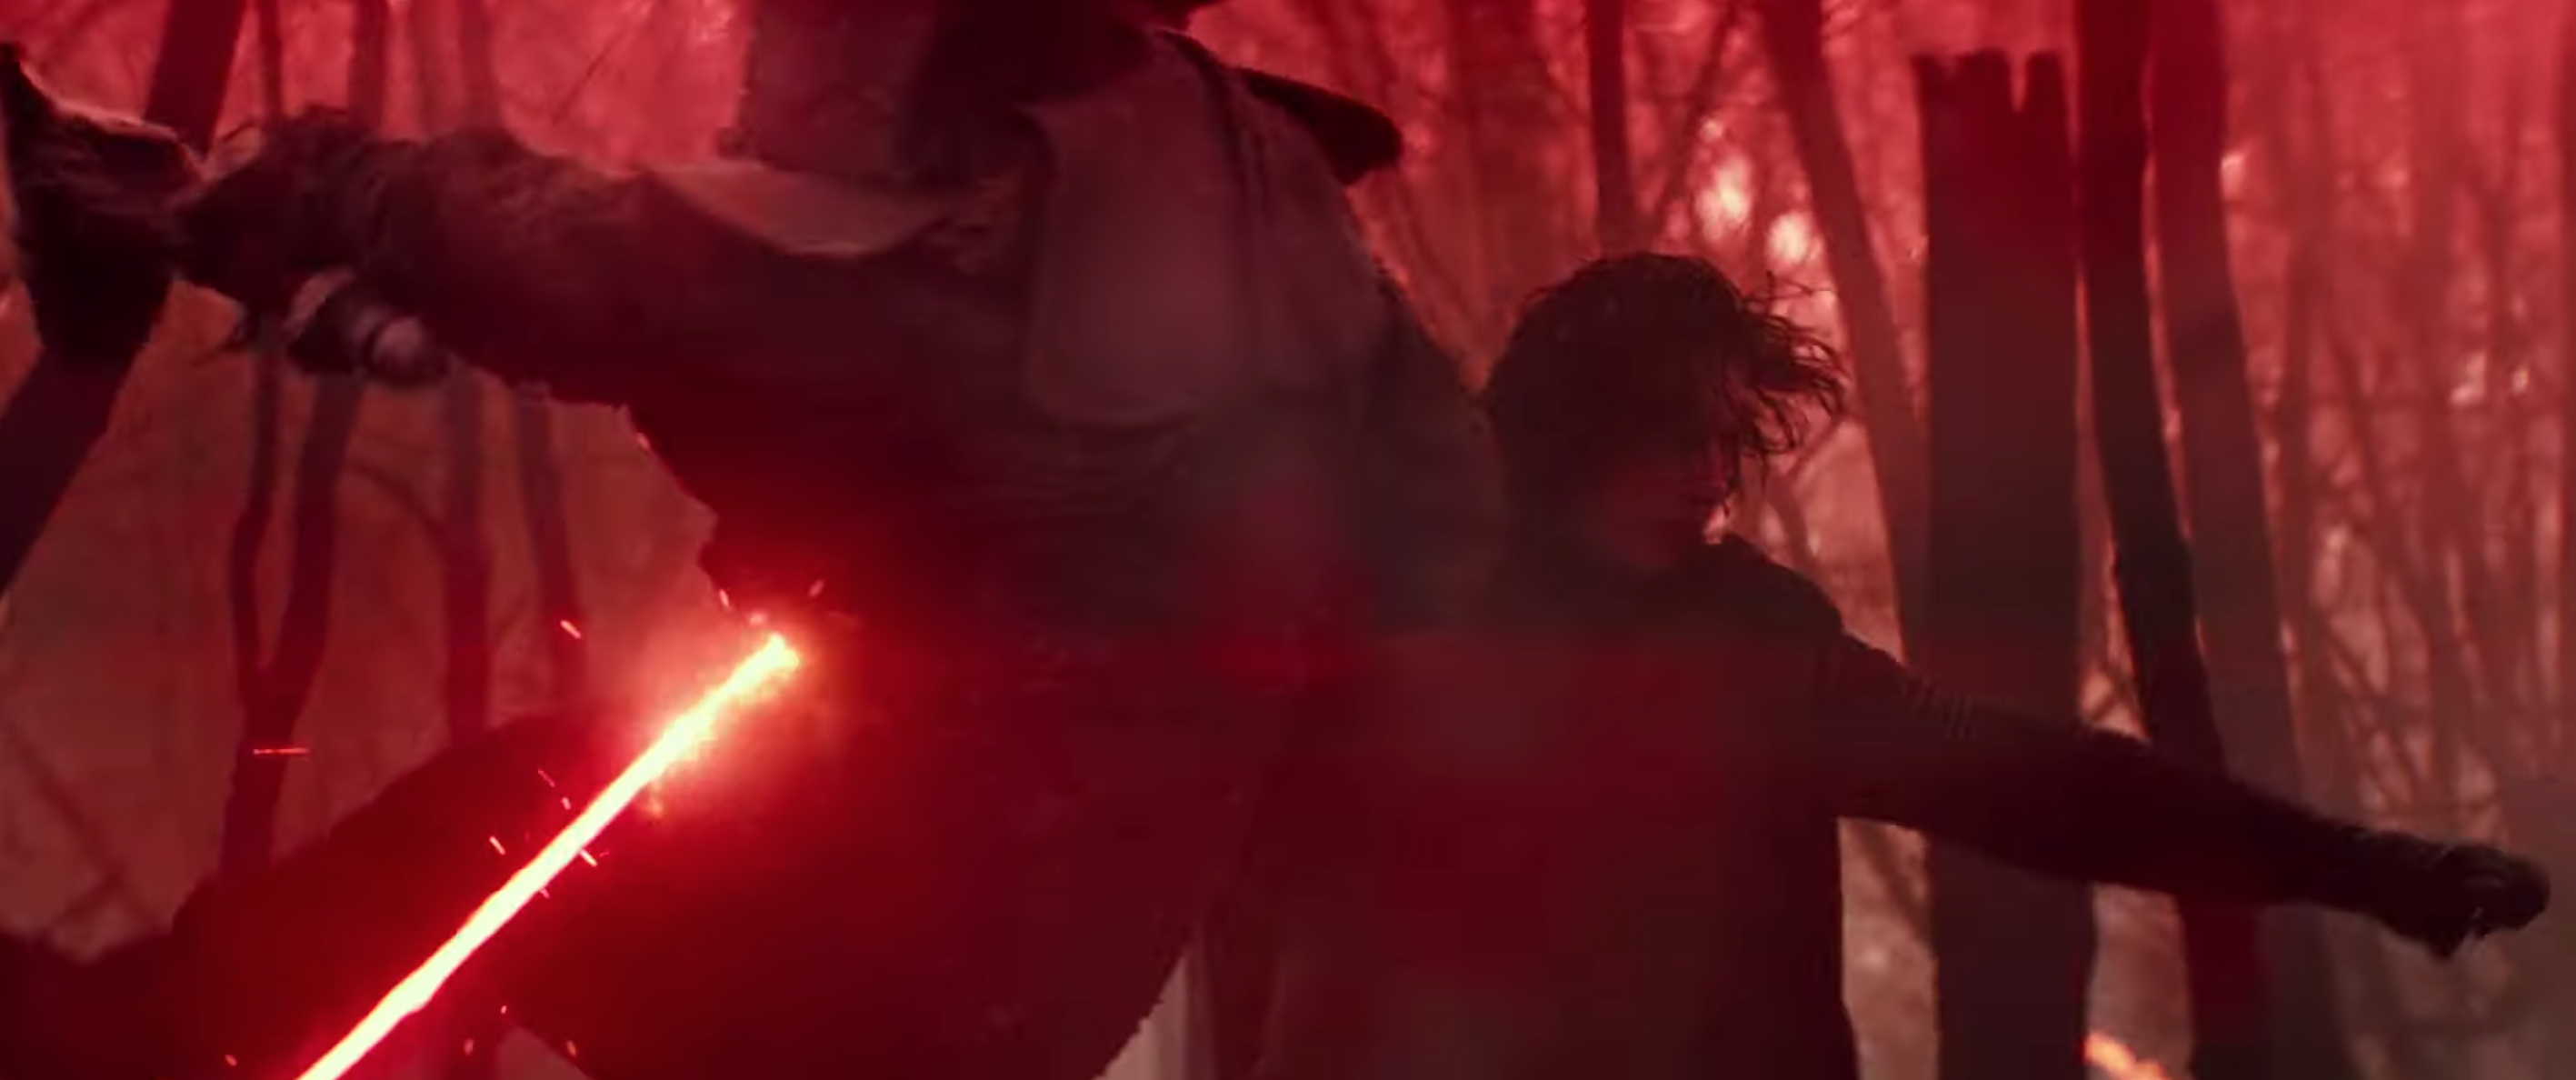 Screen Shot 2019 04 12 at 12.46.34 PM IX Takeaways From Star Wars: The Rise of Skywalkers Trailer